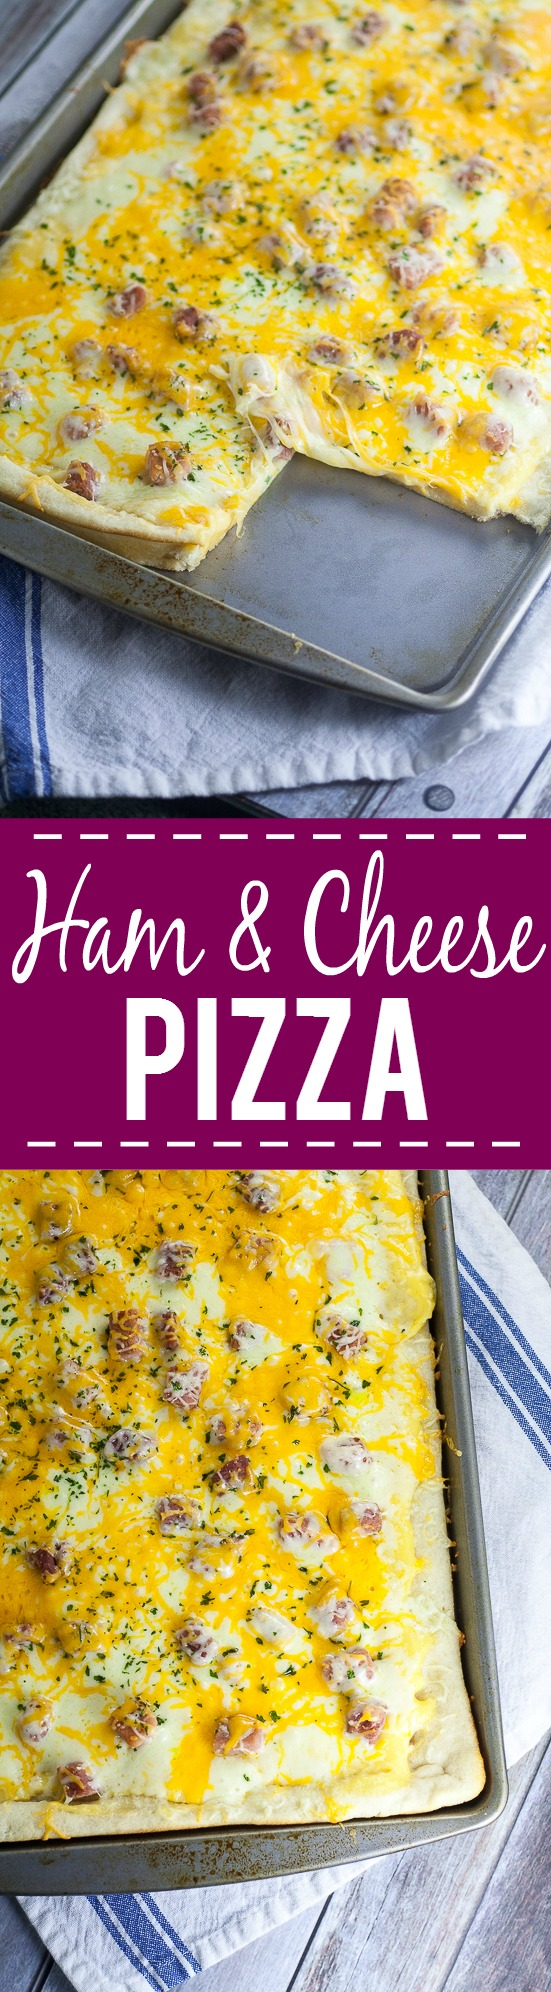 Ham and Cheese Pizza Recipe - Ham and cheese is a classic combination that everyone loves, especially in this creamy, cheesy Ham and Cheese Pizza recipe that makes a yummy and easy family dinner! Make this quick and easy dinner recipe in less than 30 minutes!